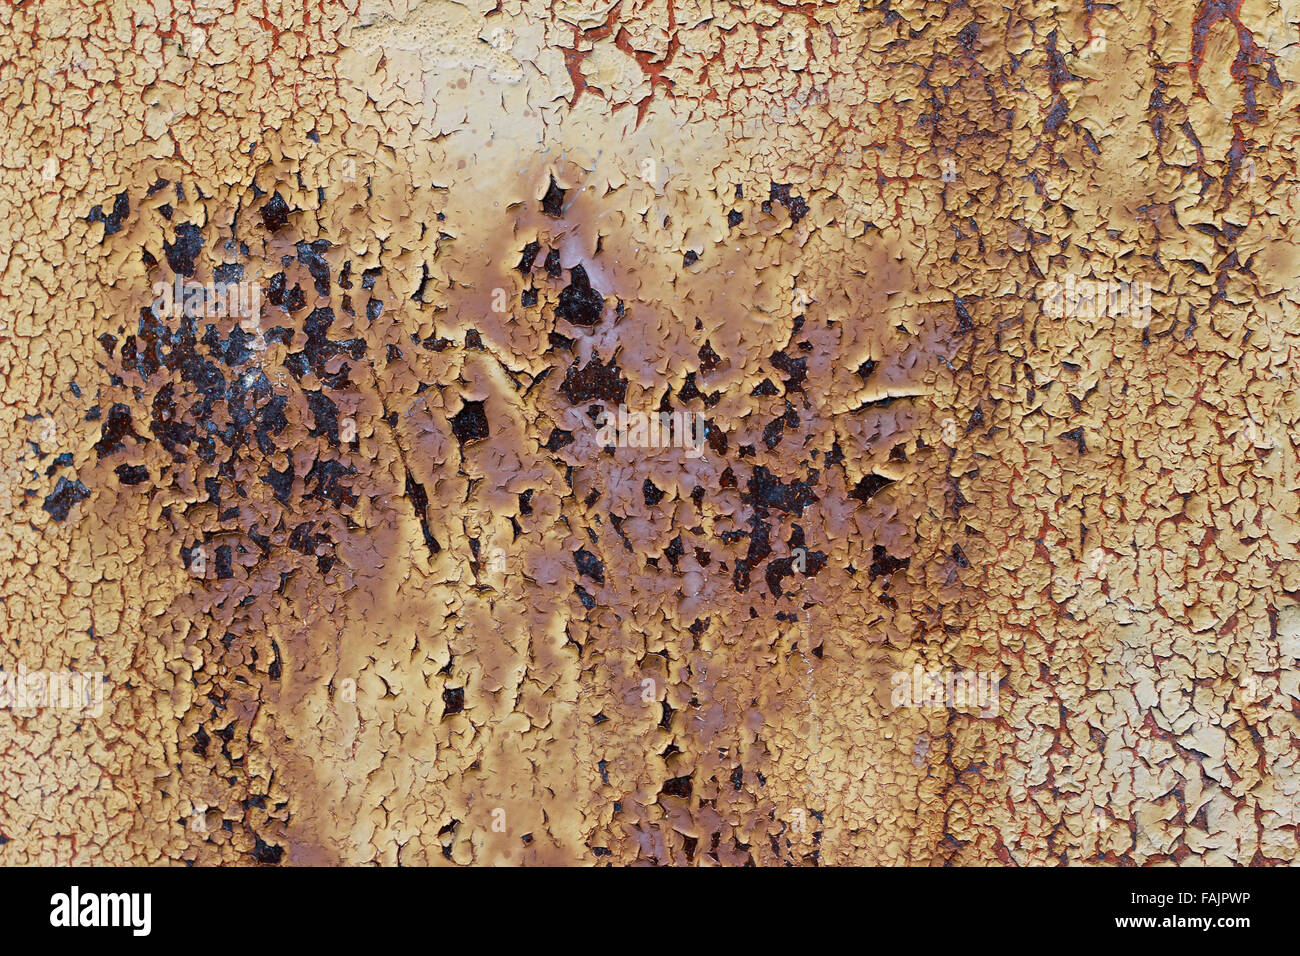 0ld rusty metal - flaky paint - Stock Image